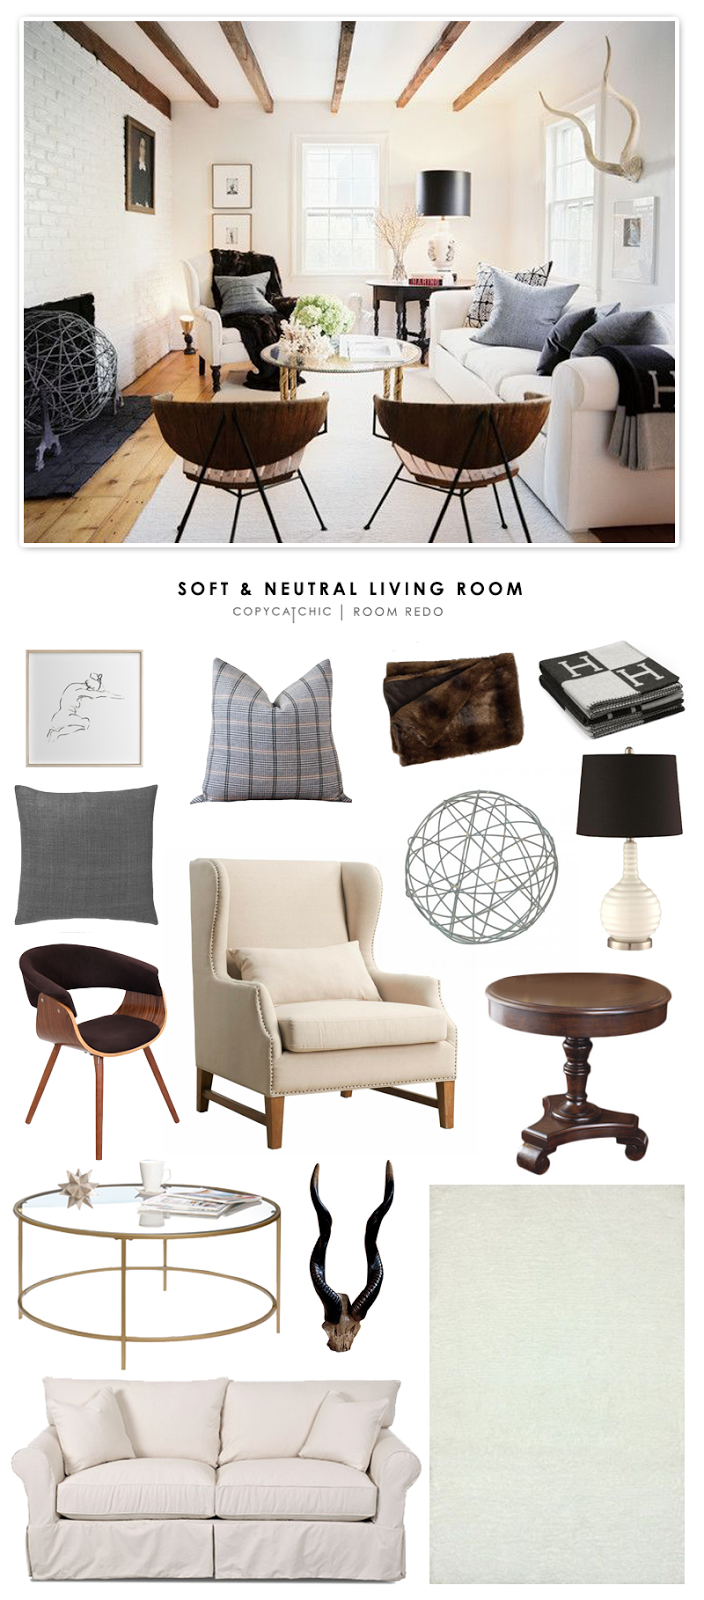 A soft and neutral living room featured in Lonny Magazine and recreated for less by Copy Cat Chic